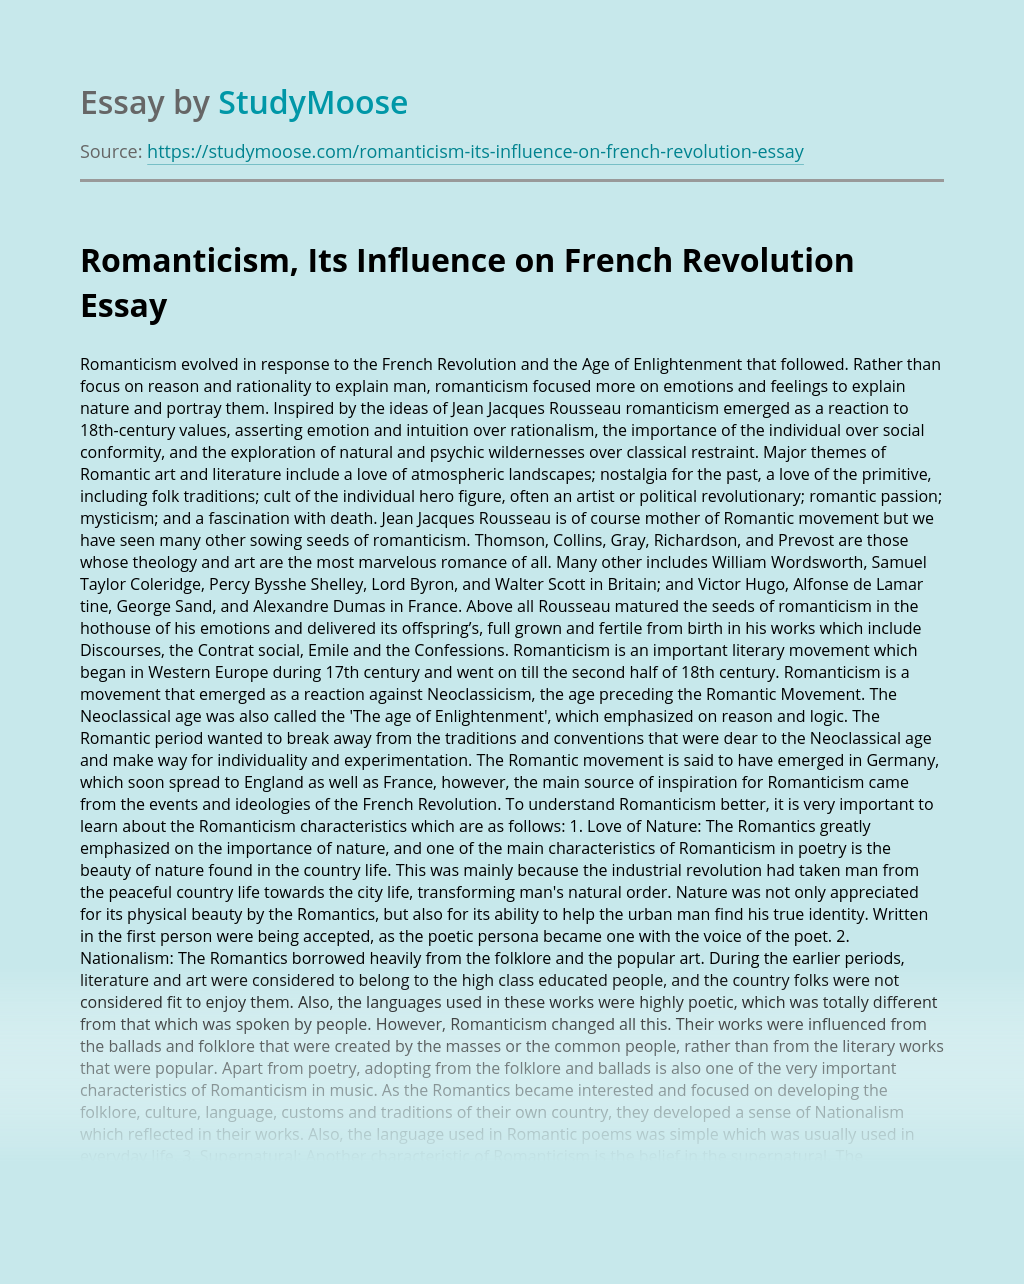 Romanticism, Its Influence on French Revolution